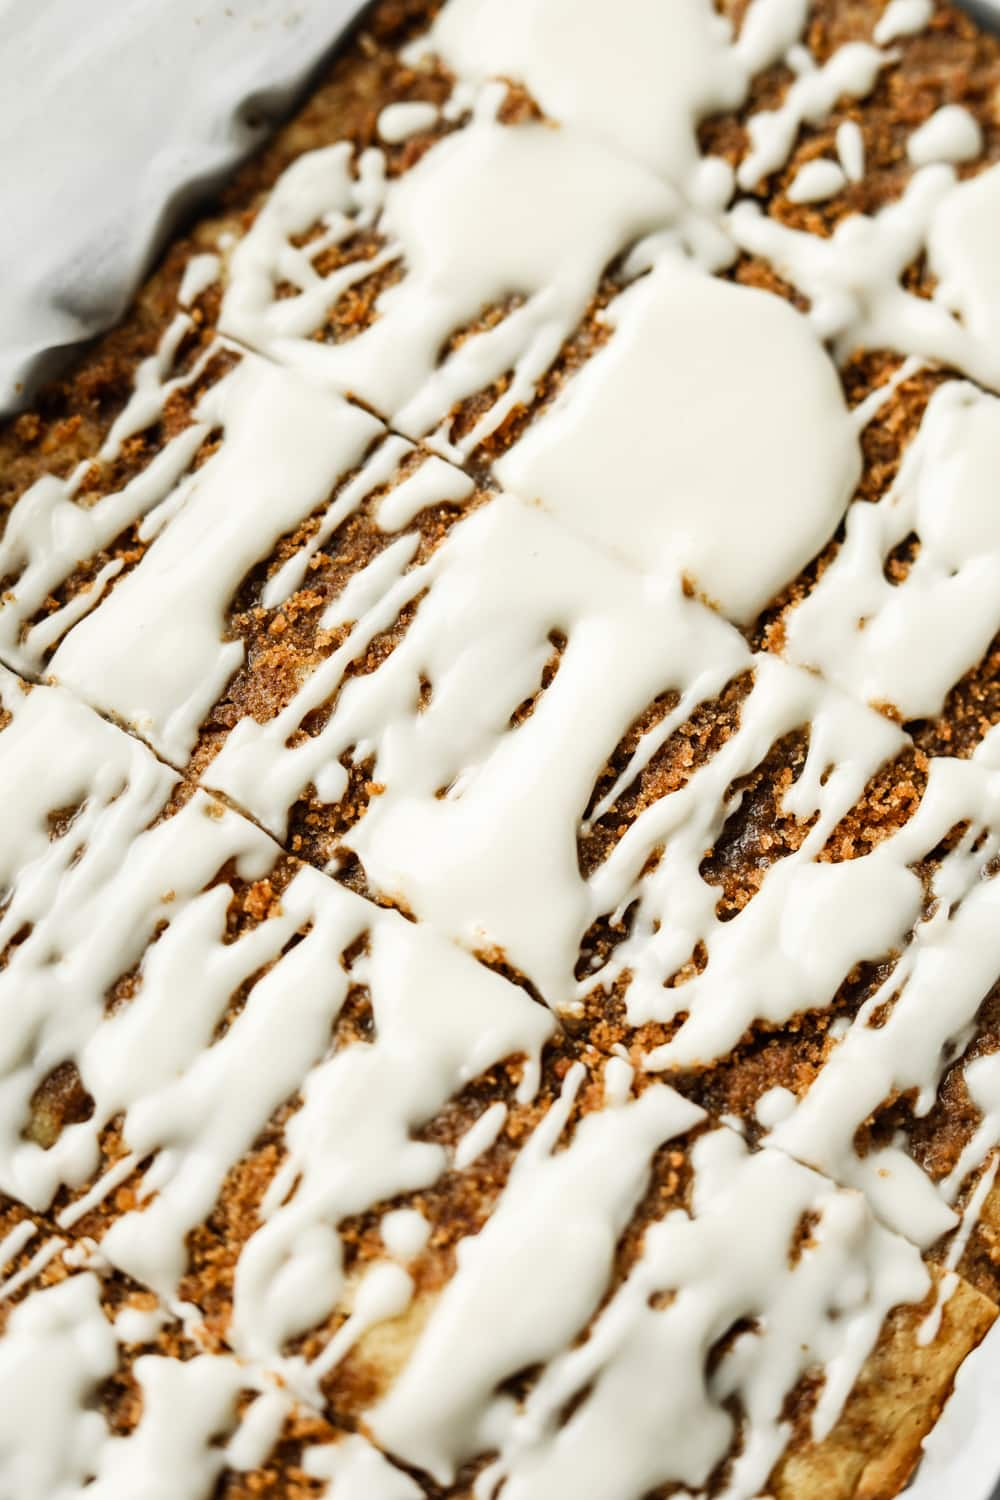 Coffee cake in a baking tray.